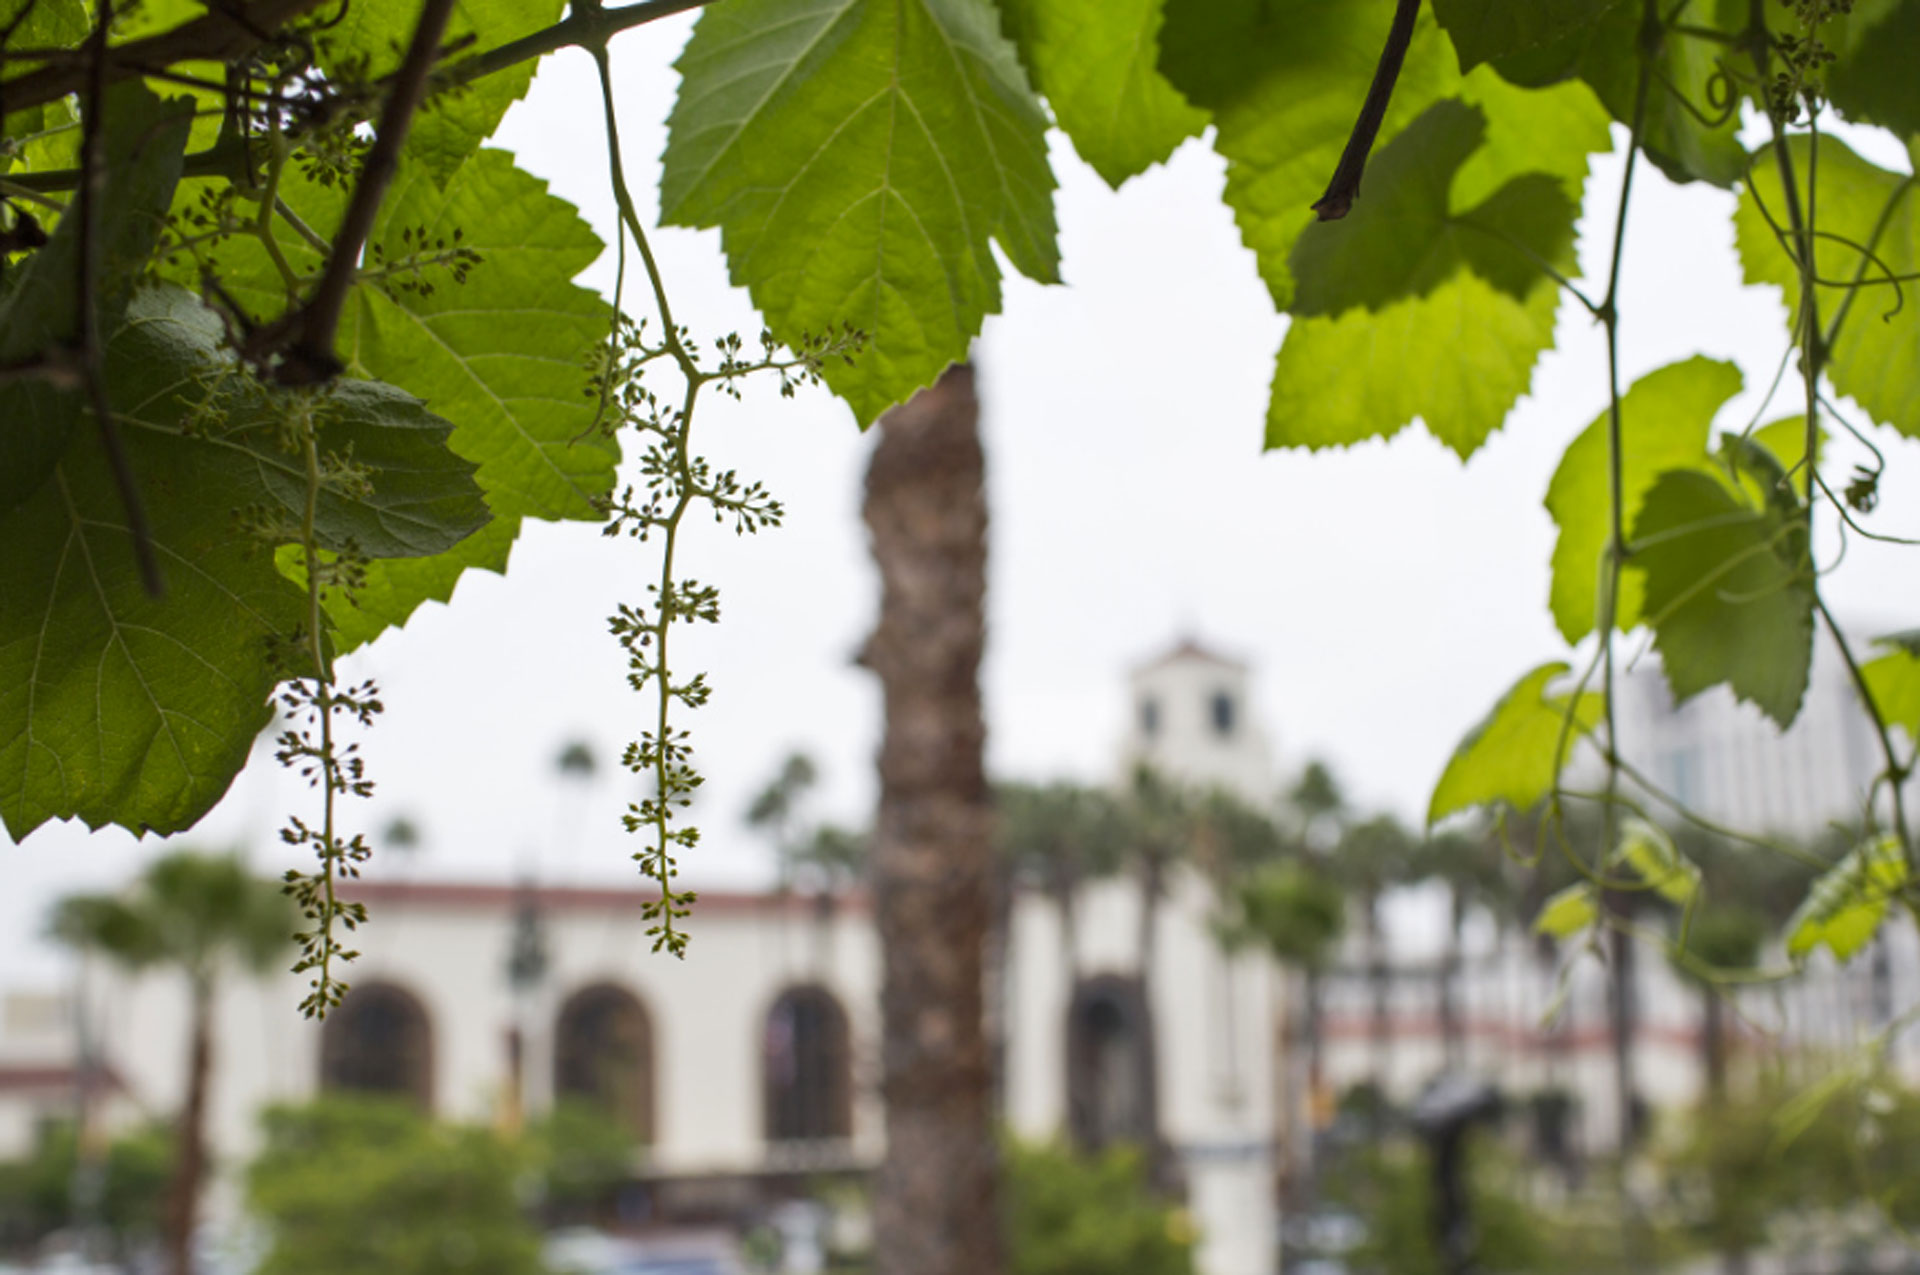 The oldest grape vines in California, which may be more than 150 years old, are located at the Avila Adobe on Olvera Street near Union Station. City Archivist Mike Holland has made wine from the grapes.